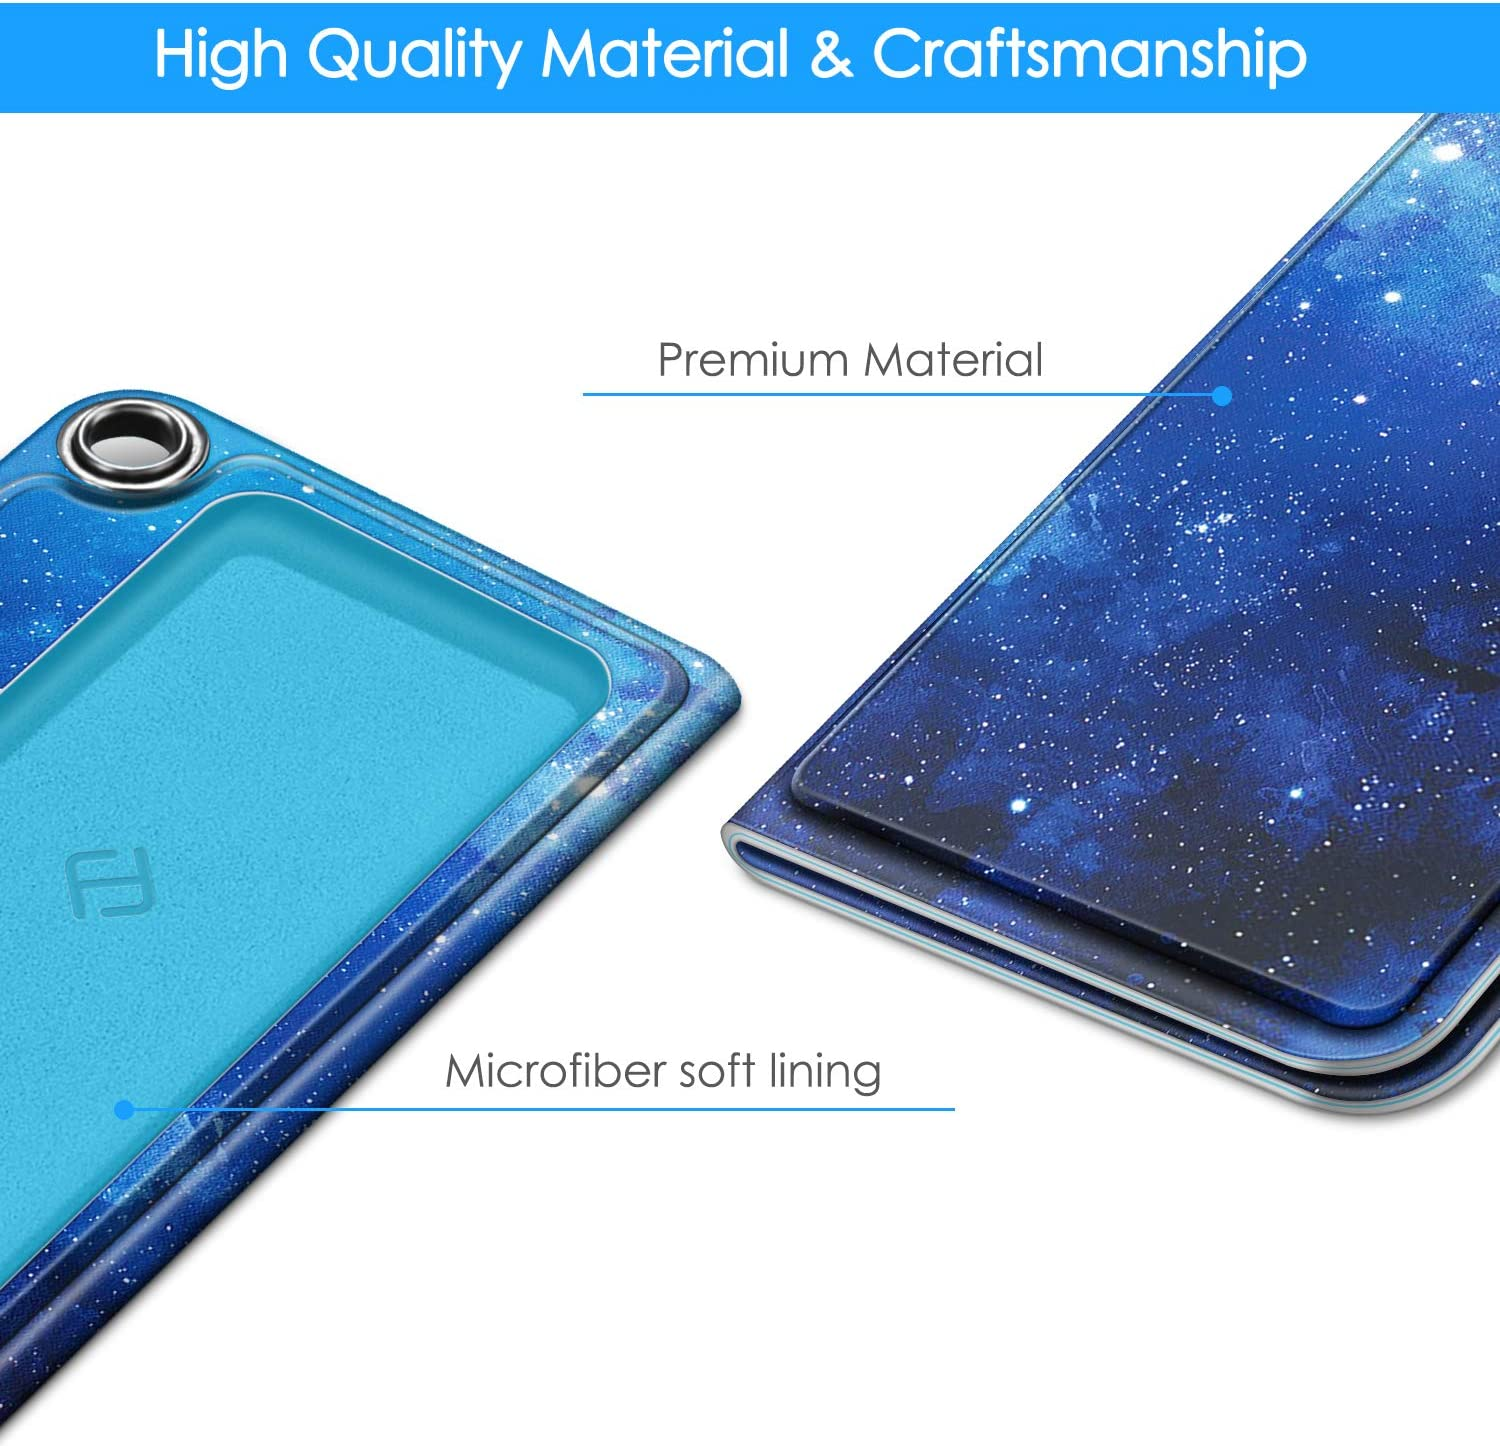 Black Premium PU Leather Carrying Cover with Magnetic Closure and Key Holder for KardiaMobile EKG Heart Monitor, Fintie Protective Case for Kardia Mobile Not Fit KardiaMobile 6L